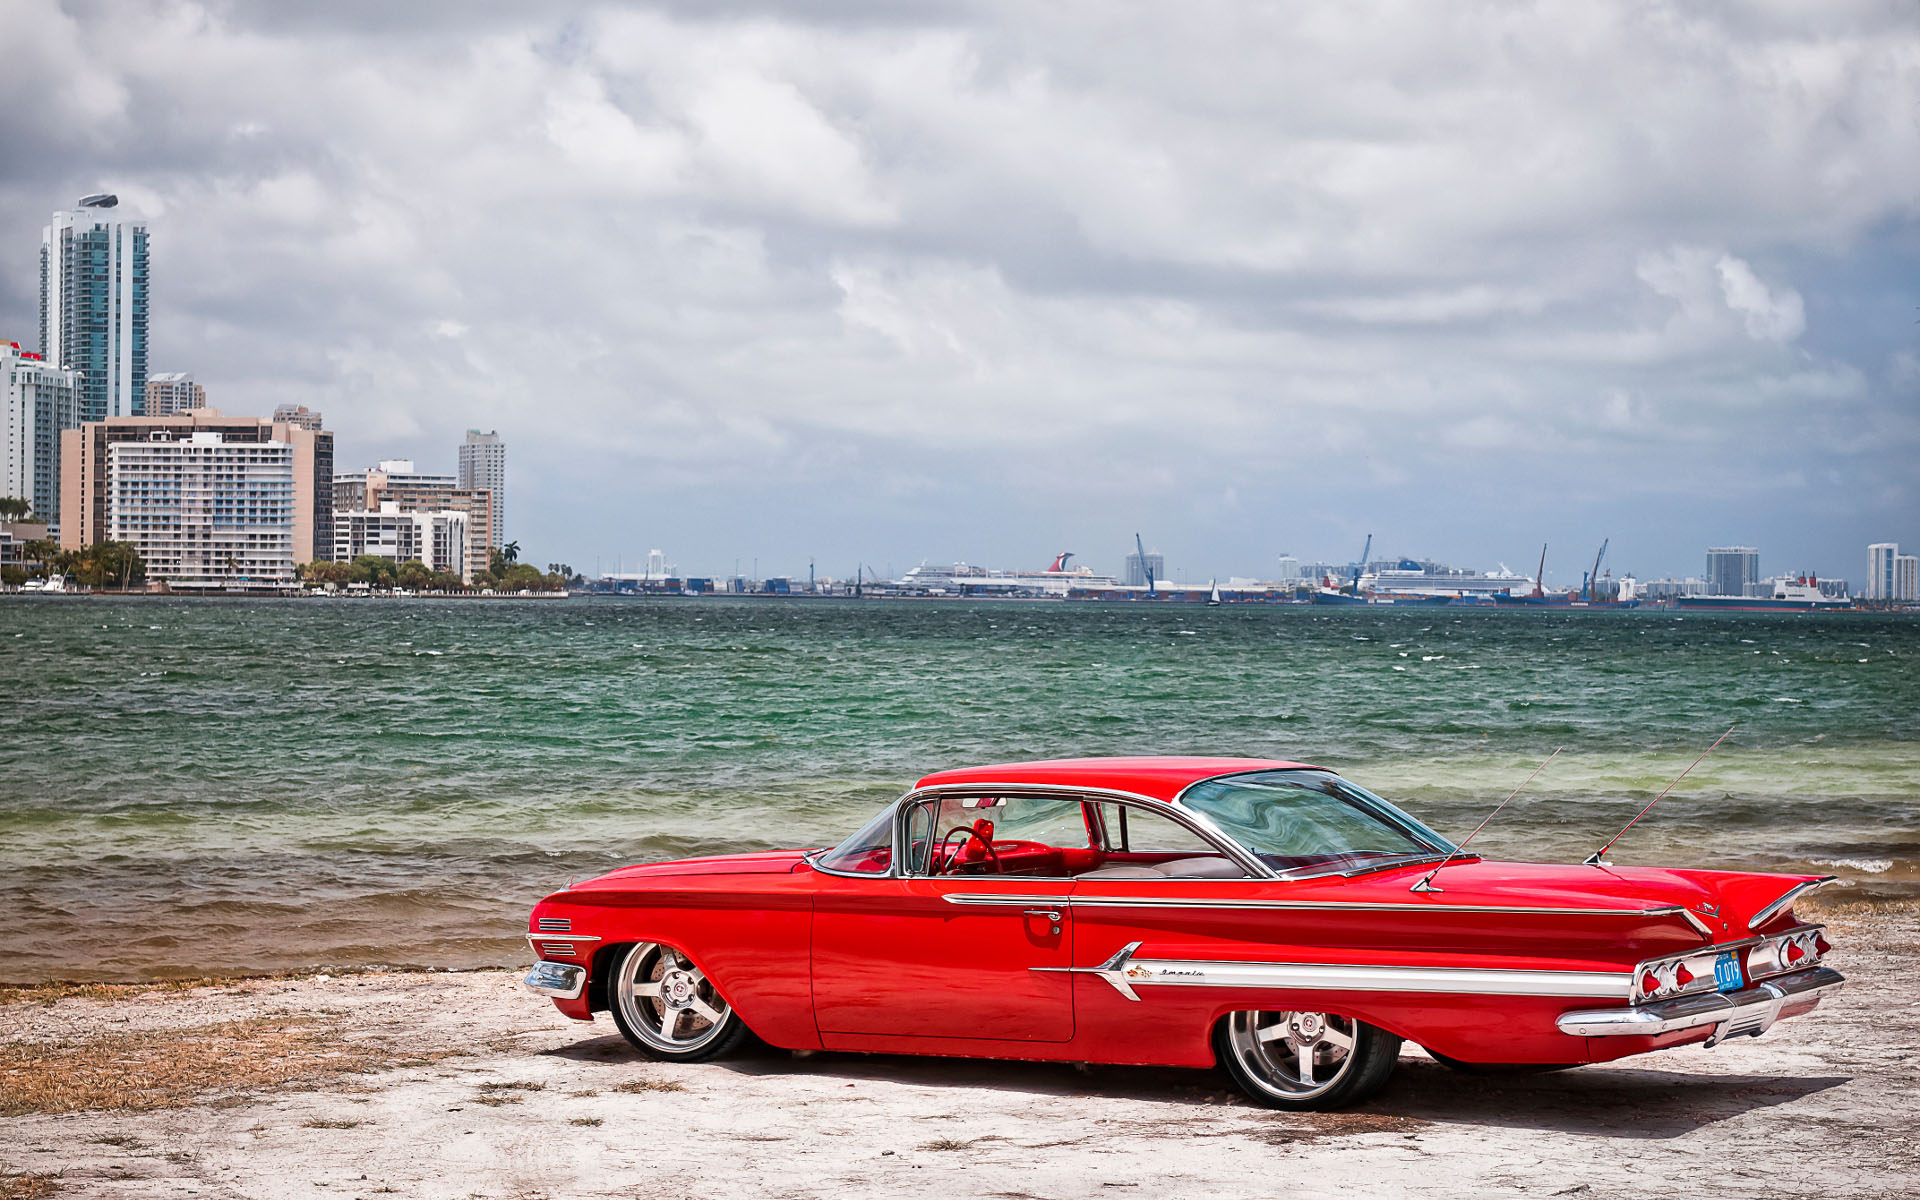 Cool Classic Car Wallpaper Desktop 12853 Wallpaper WallpaperLepi 1920x1200